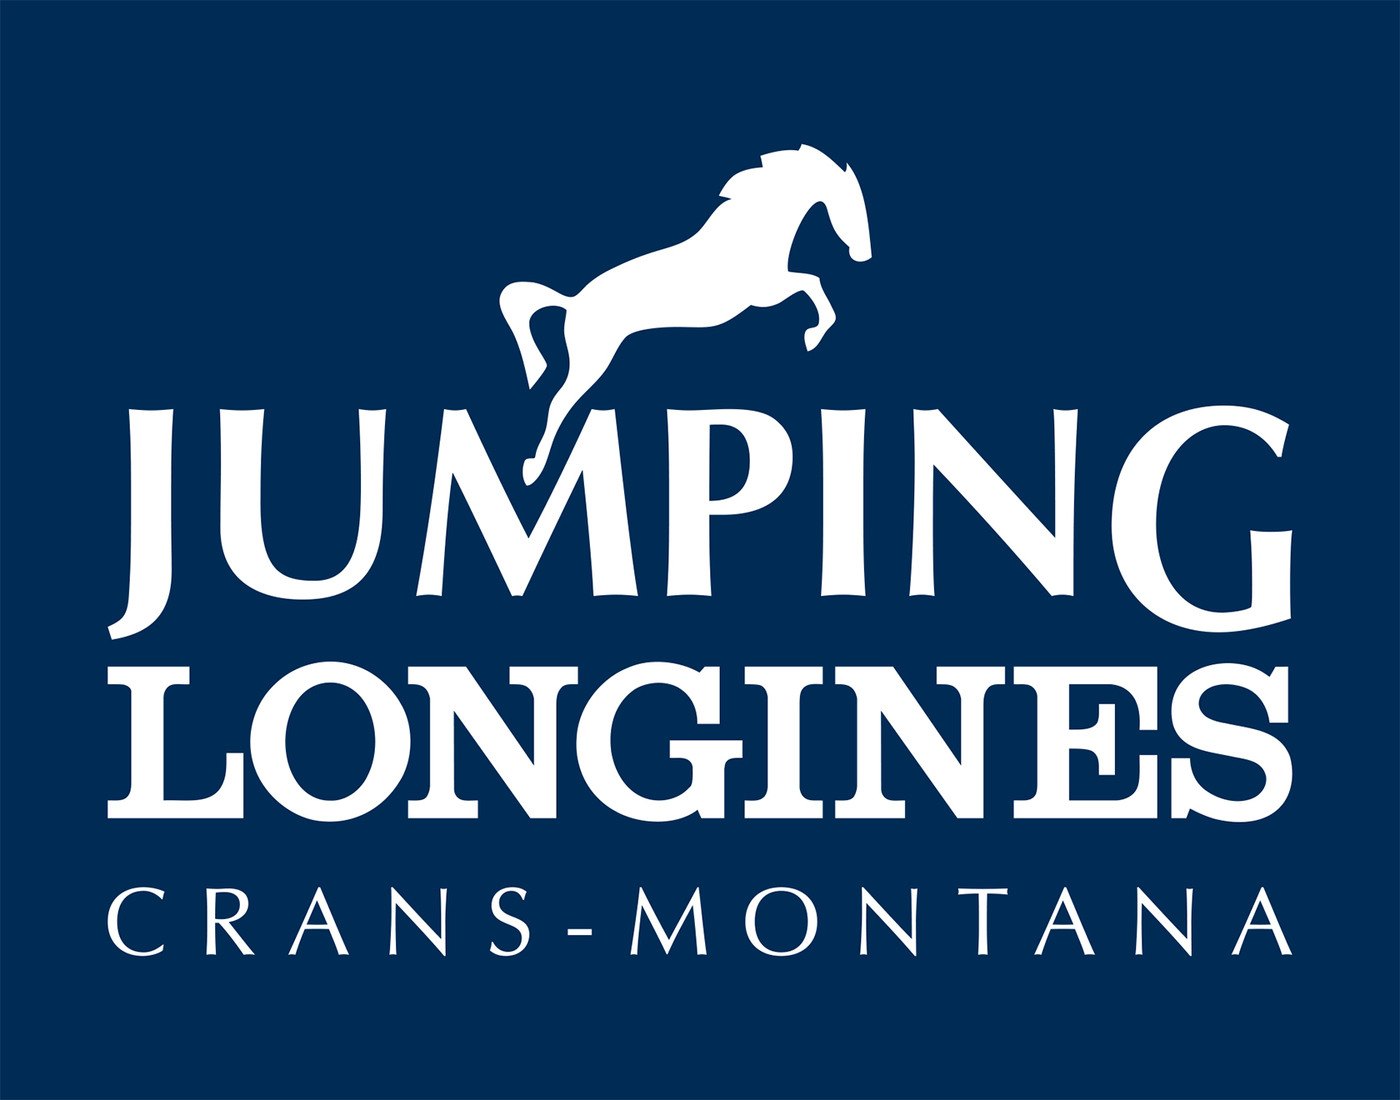 Longines Show Jumping Event: Longines becomes the Title Partner of the Jumping Longines of Crans-Montana 1